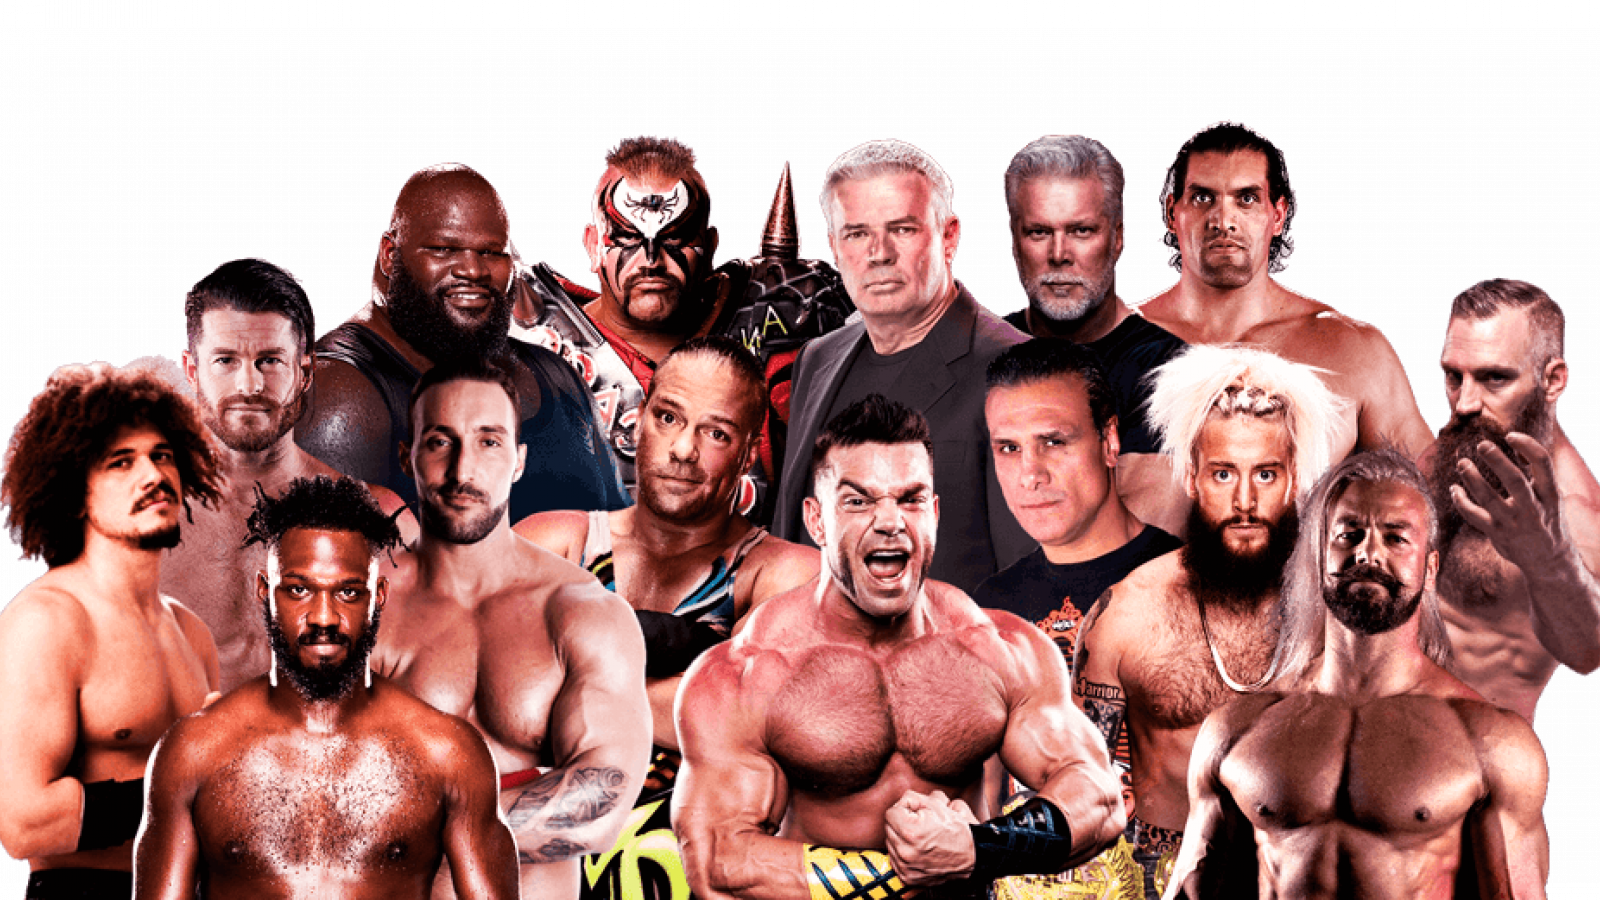 Wrestling legends and superstars are all set to compete at SUPERSLAM in Qatar